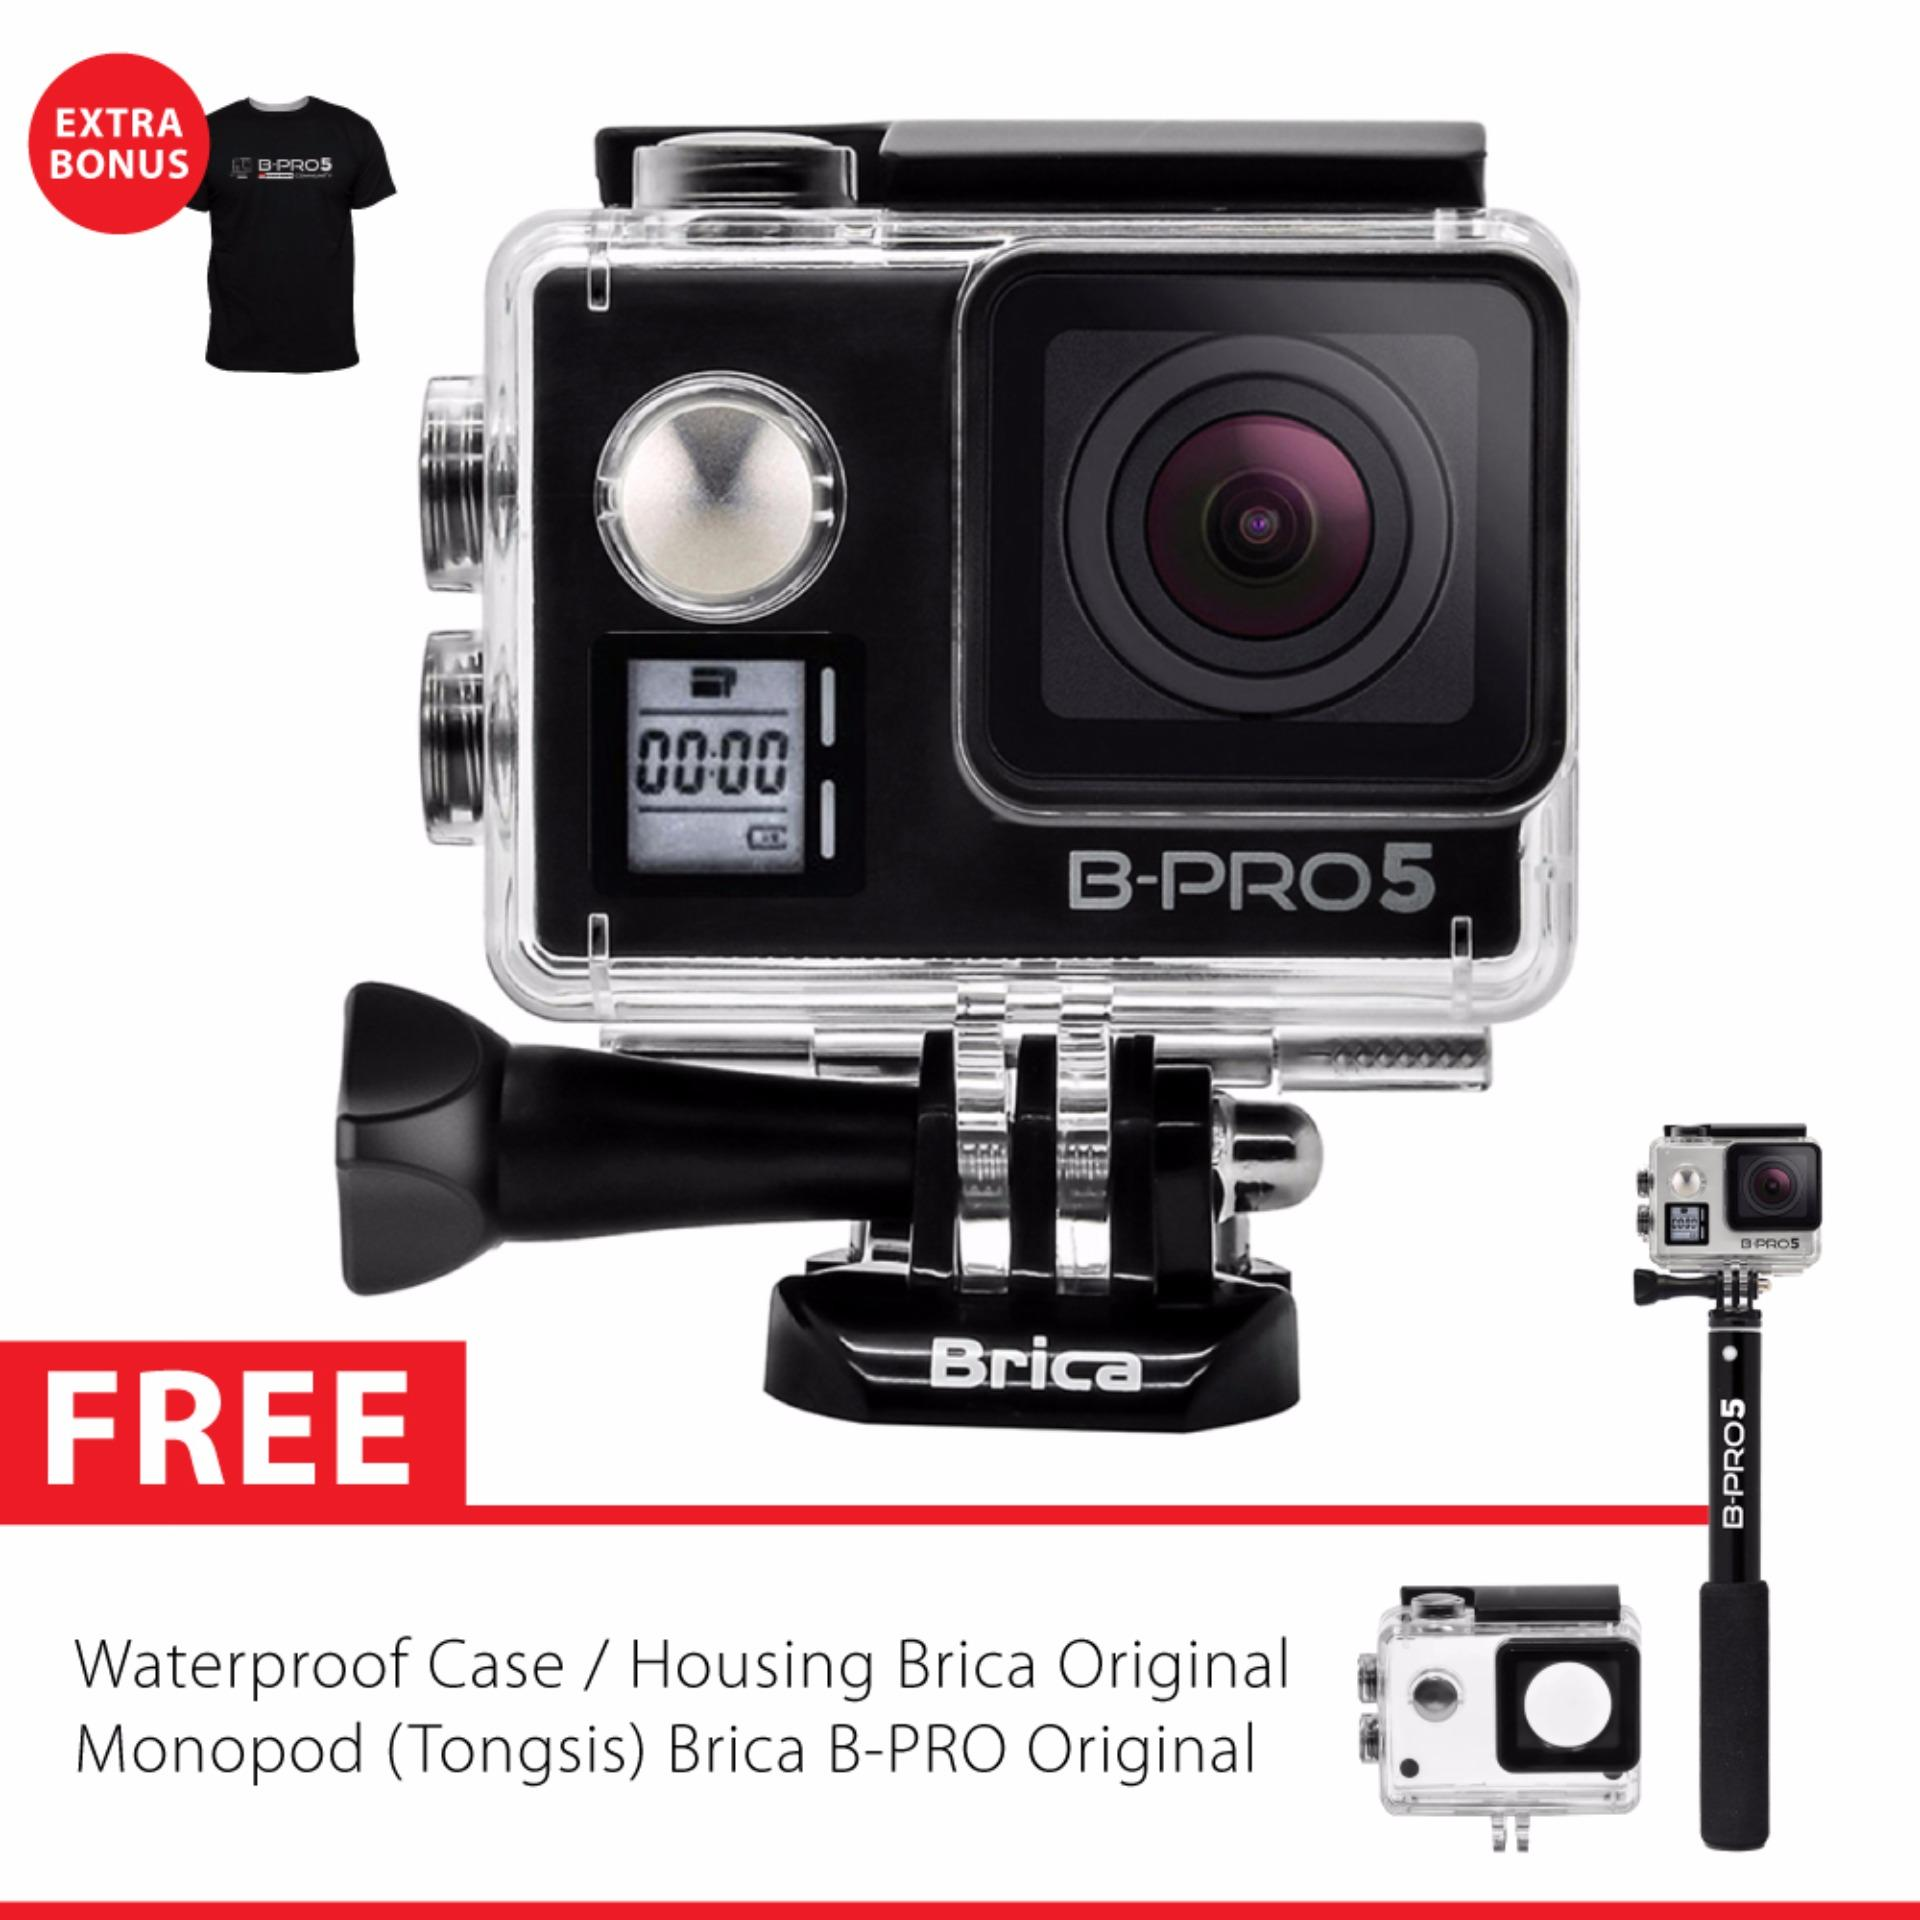 Promo Toko Brica B Pro 5 Alpha Edition Version 2 Mark Iis Ae2S 4K Wifi Action Camera Tongsis Brica Original Hitam